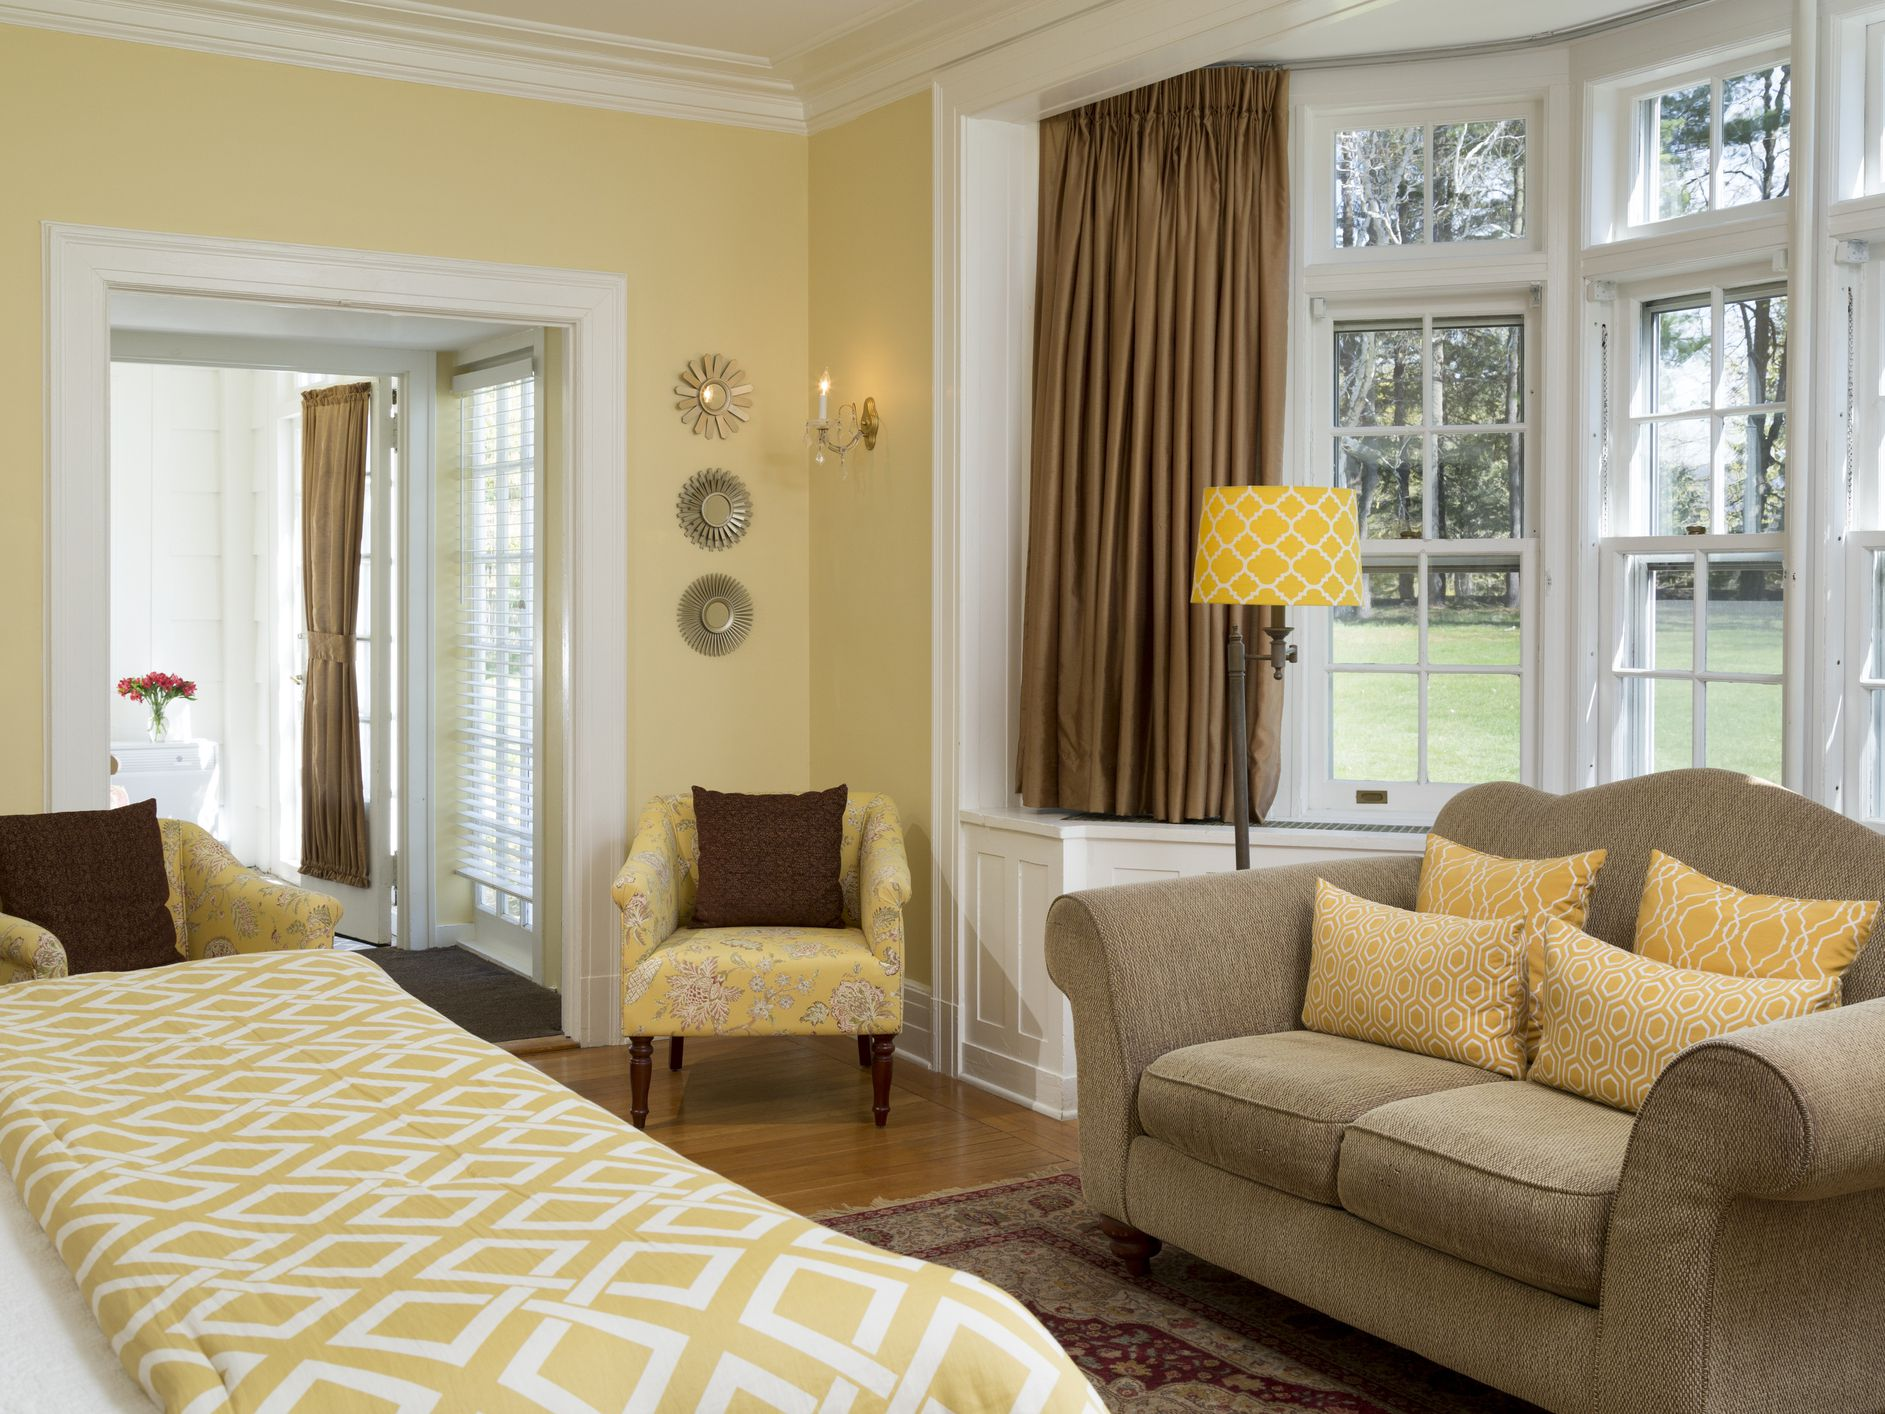 8 Yellow Bedroom Photos and Ideas